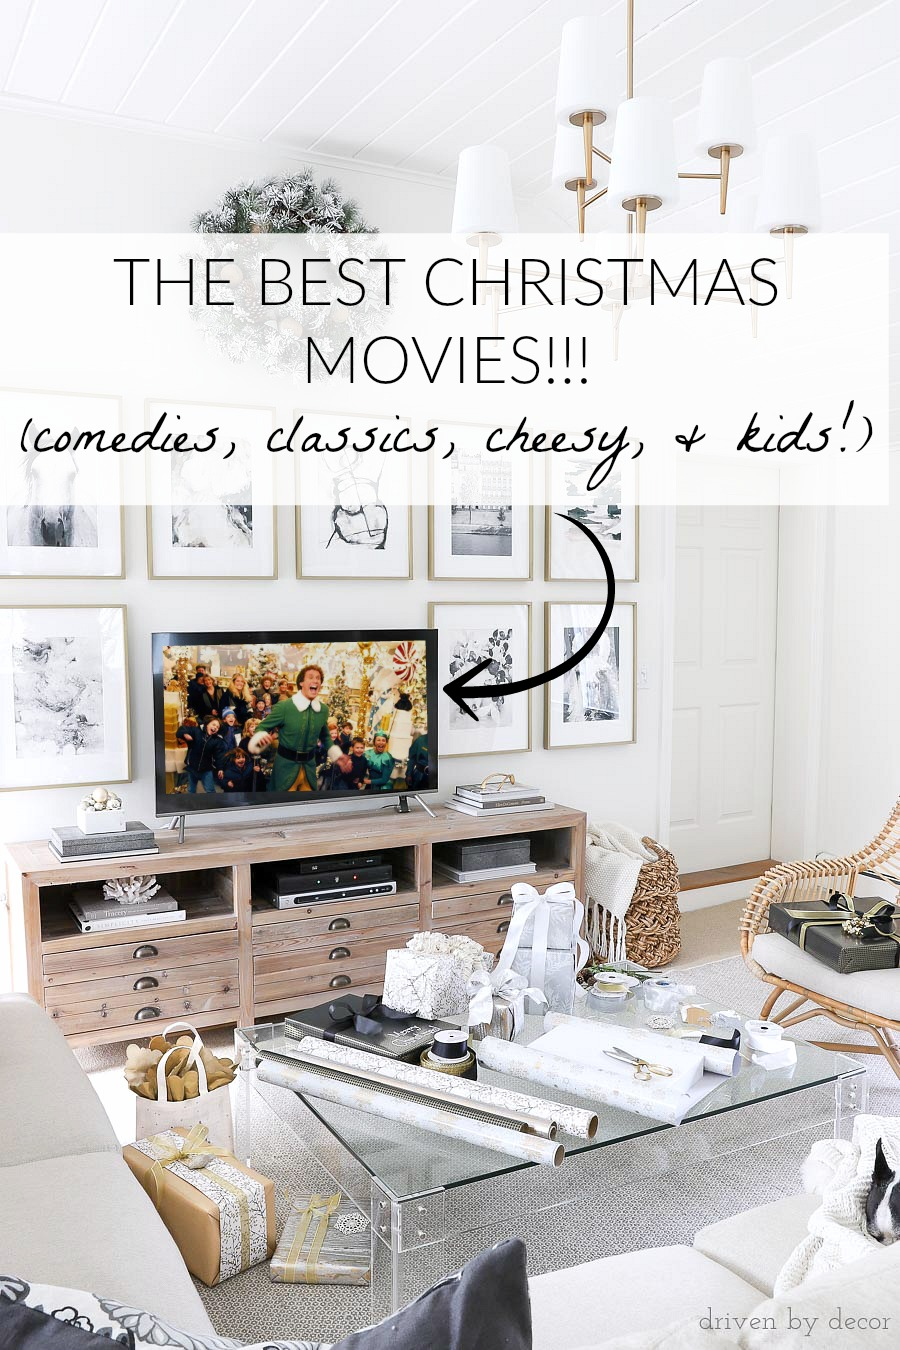 The best Christmas movies (our readers' favorites to watch during the holidays!) Comedies, classics, cheesy, and kids movies!